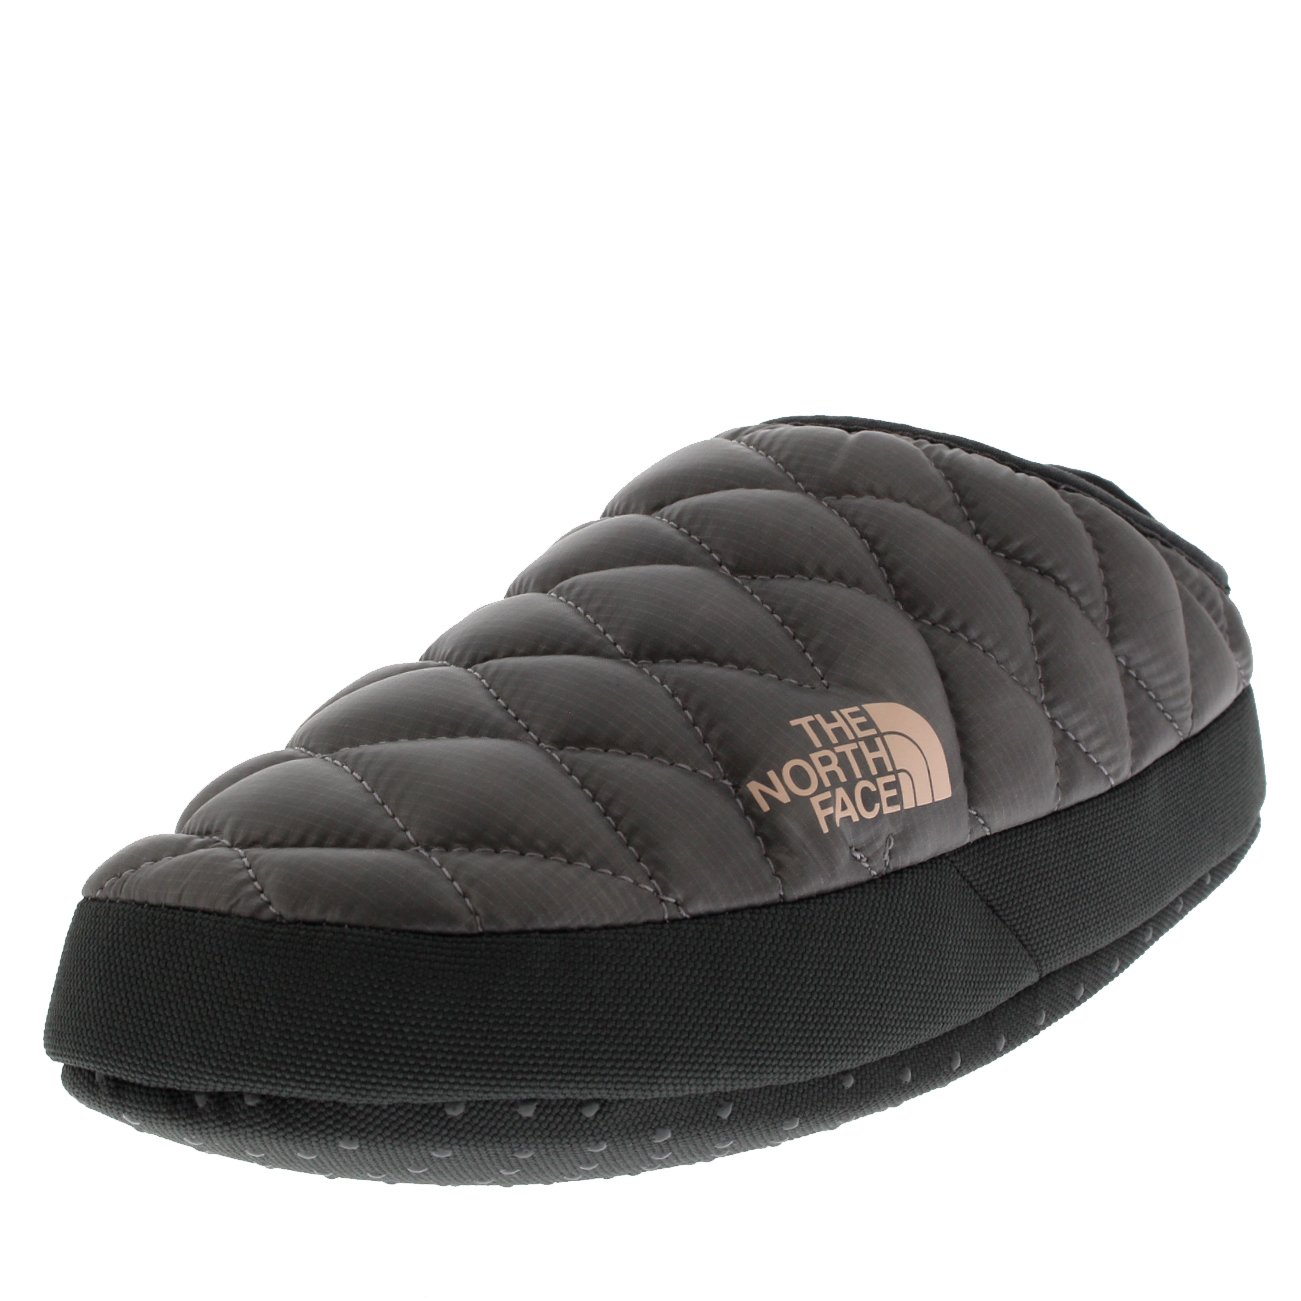 The North Face Womens Thermoball Tent Mule IV Water Resistant Slippers - Shiny Frost Gray/Iron Gate Gray - 8-9.5